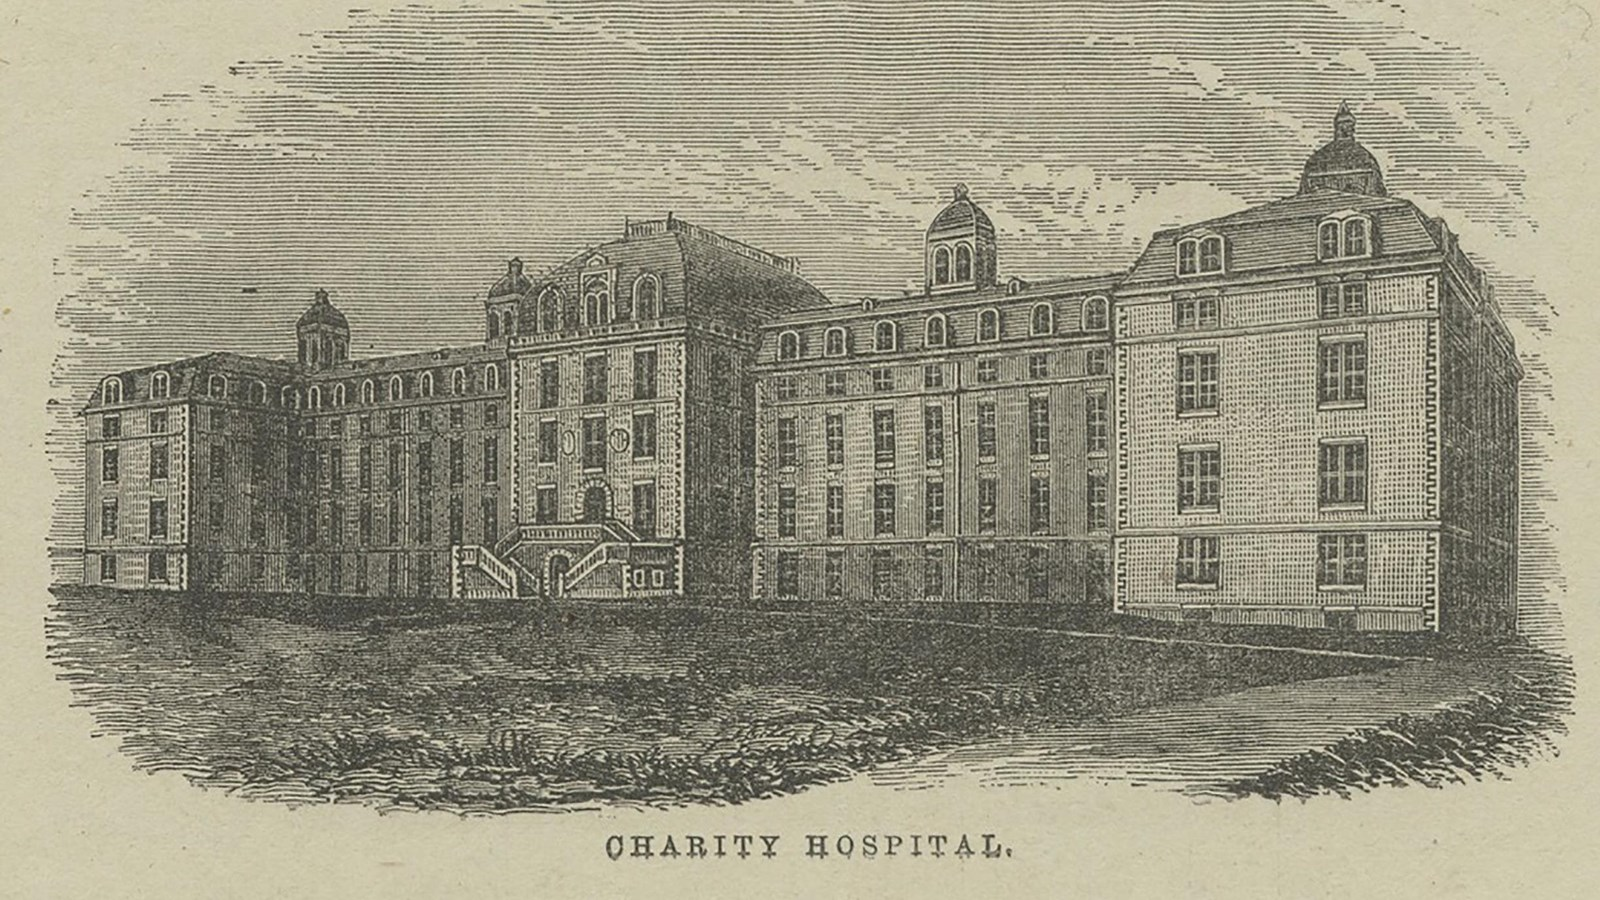 [Image description: A rendition of the asylum on Blackwell's Island.] Via The New York Public Library on nps.gov